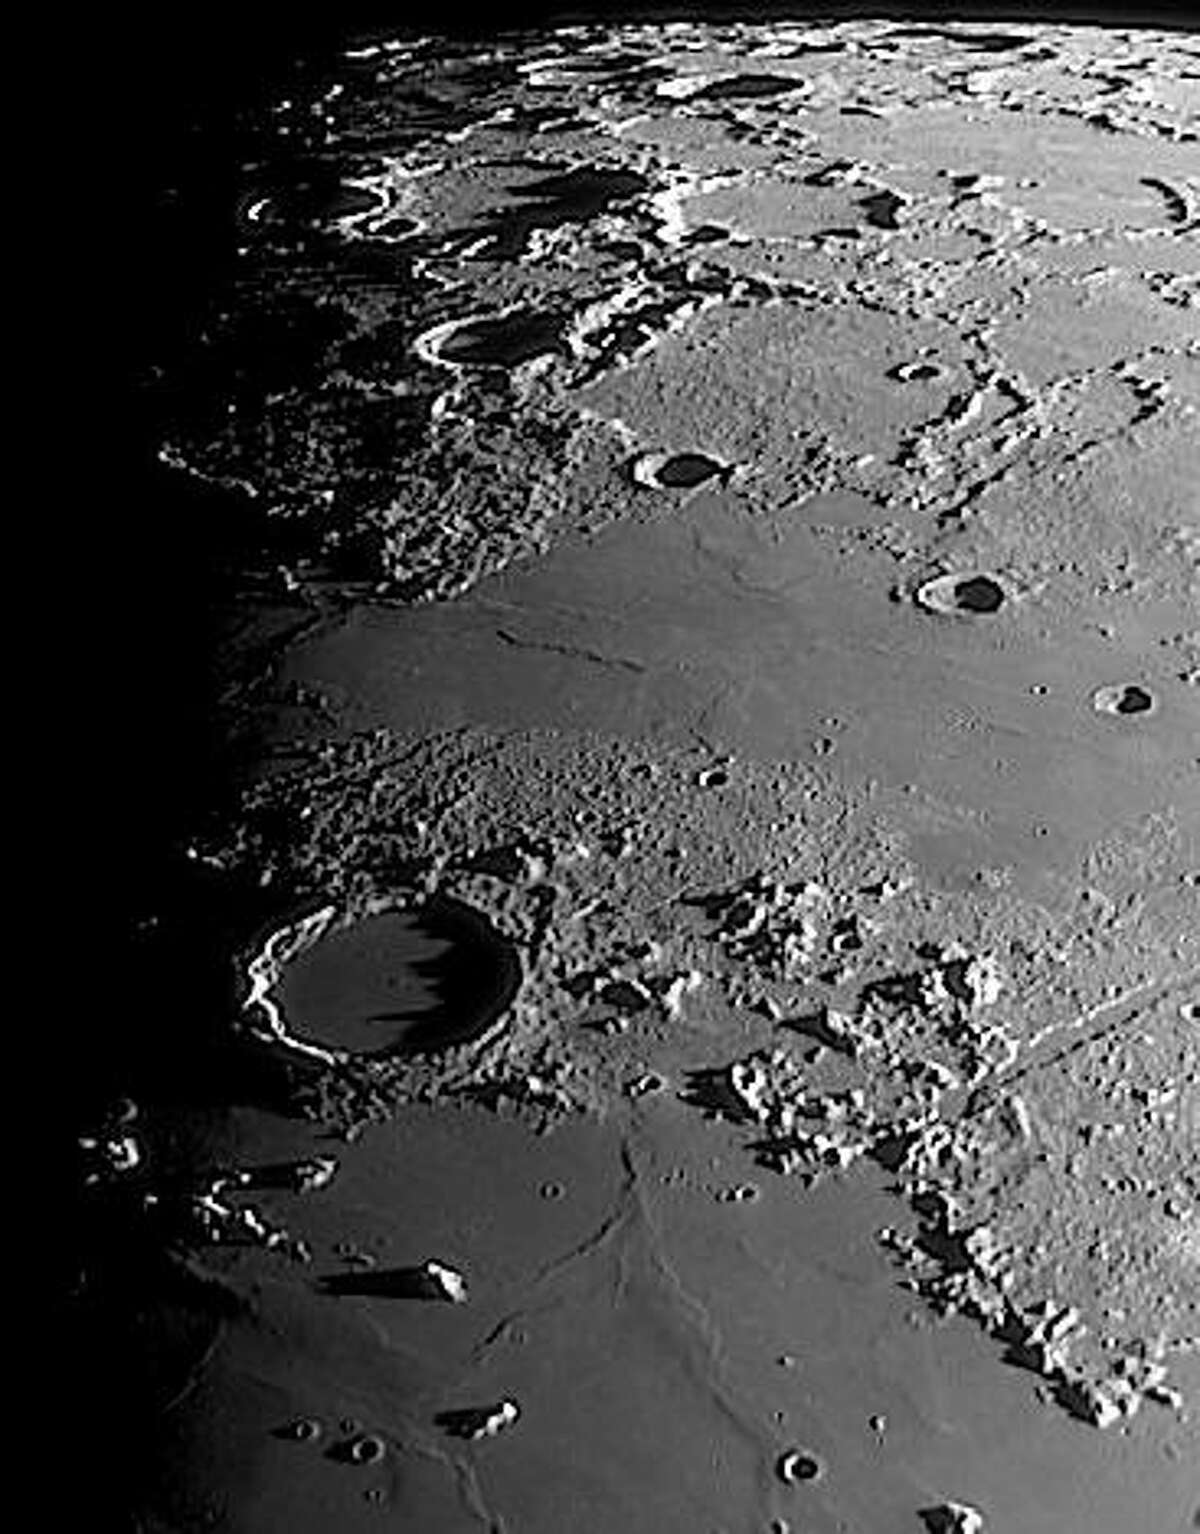 Images and videos of calm and serene scenes are being shared throughout the media and online during these stressful times. Bill Cloutier of the John J. McCarthy Observatory in New Milford captured this scene of a quiet corner of the moon April 1.The image features the crater Plato - named after ancient Greek philosopher Plato - located on the northern shore of the Mare Imbrium and at the western reach of the lunar Alpes. The crater is approximately 63 miles across, 4,800 feet in depth, with its floor flooded by an ancient lava flow. About 3.84 billion years old (slightly younger than the adjacent mare to the south), its jagged rims casts menacing shadows across the crater floor at sunrise. For those who are interested in learning more about Plato or other lunar features, contact the observatory at mccarthy.observatory@gmail.com to set up a possible webcast or informal observatory chat.